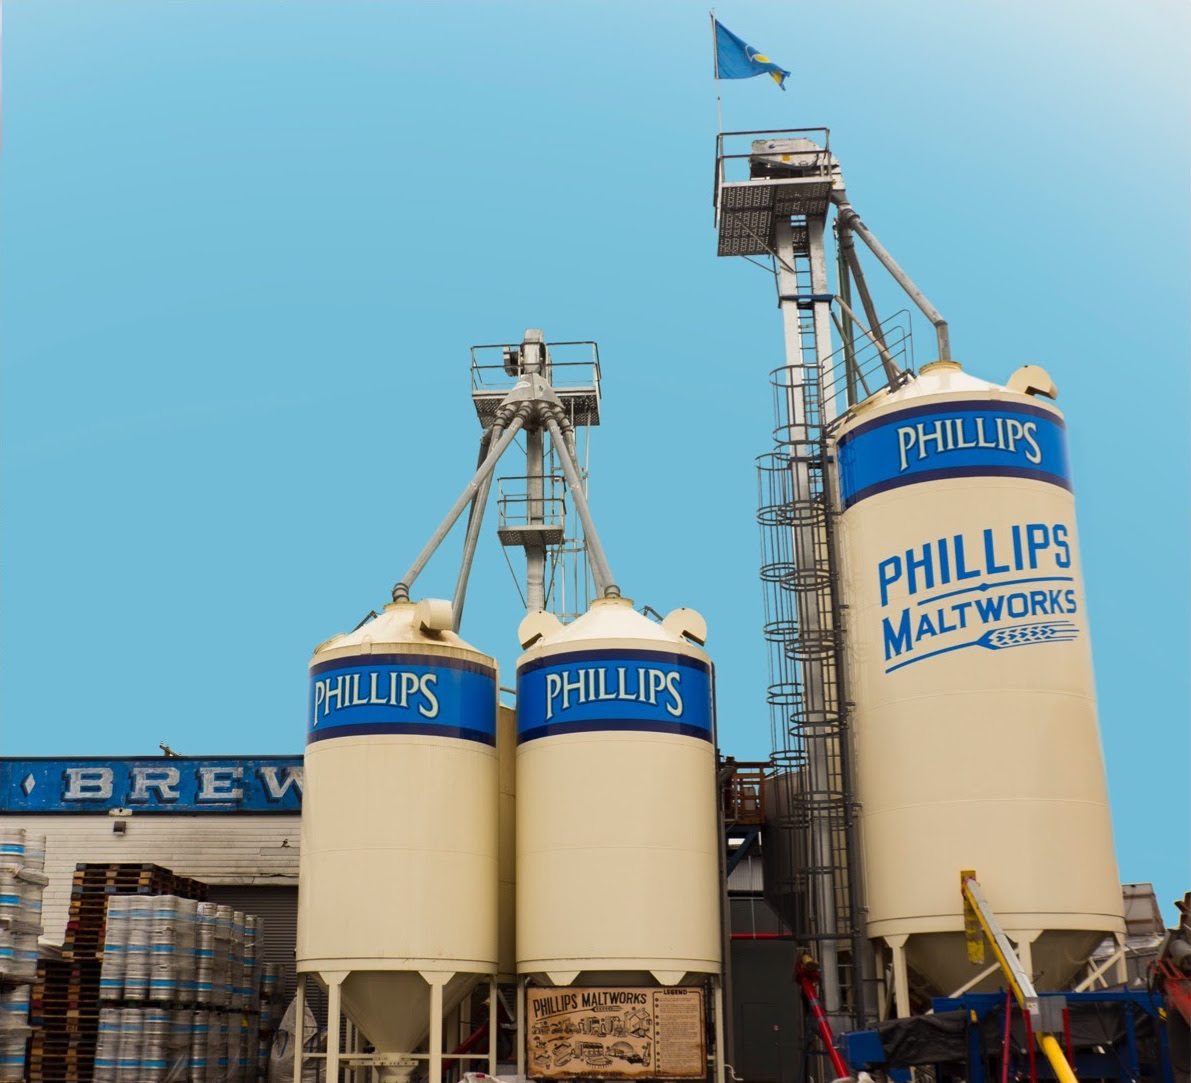 Homer St Cafe Announces Third Takeover Series Phillips